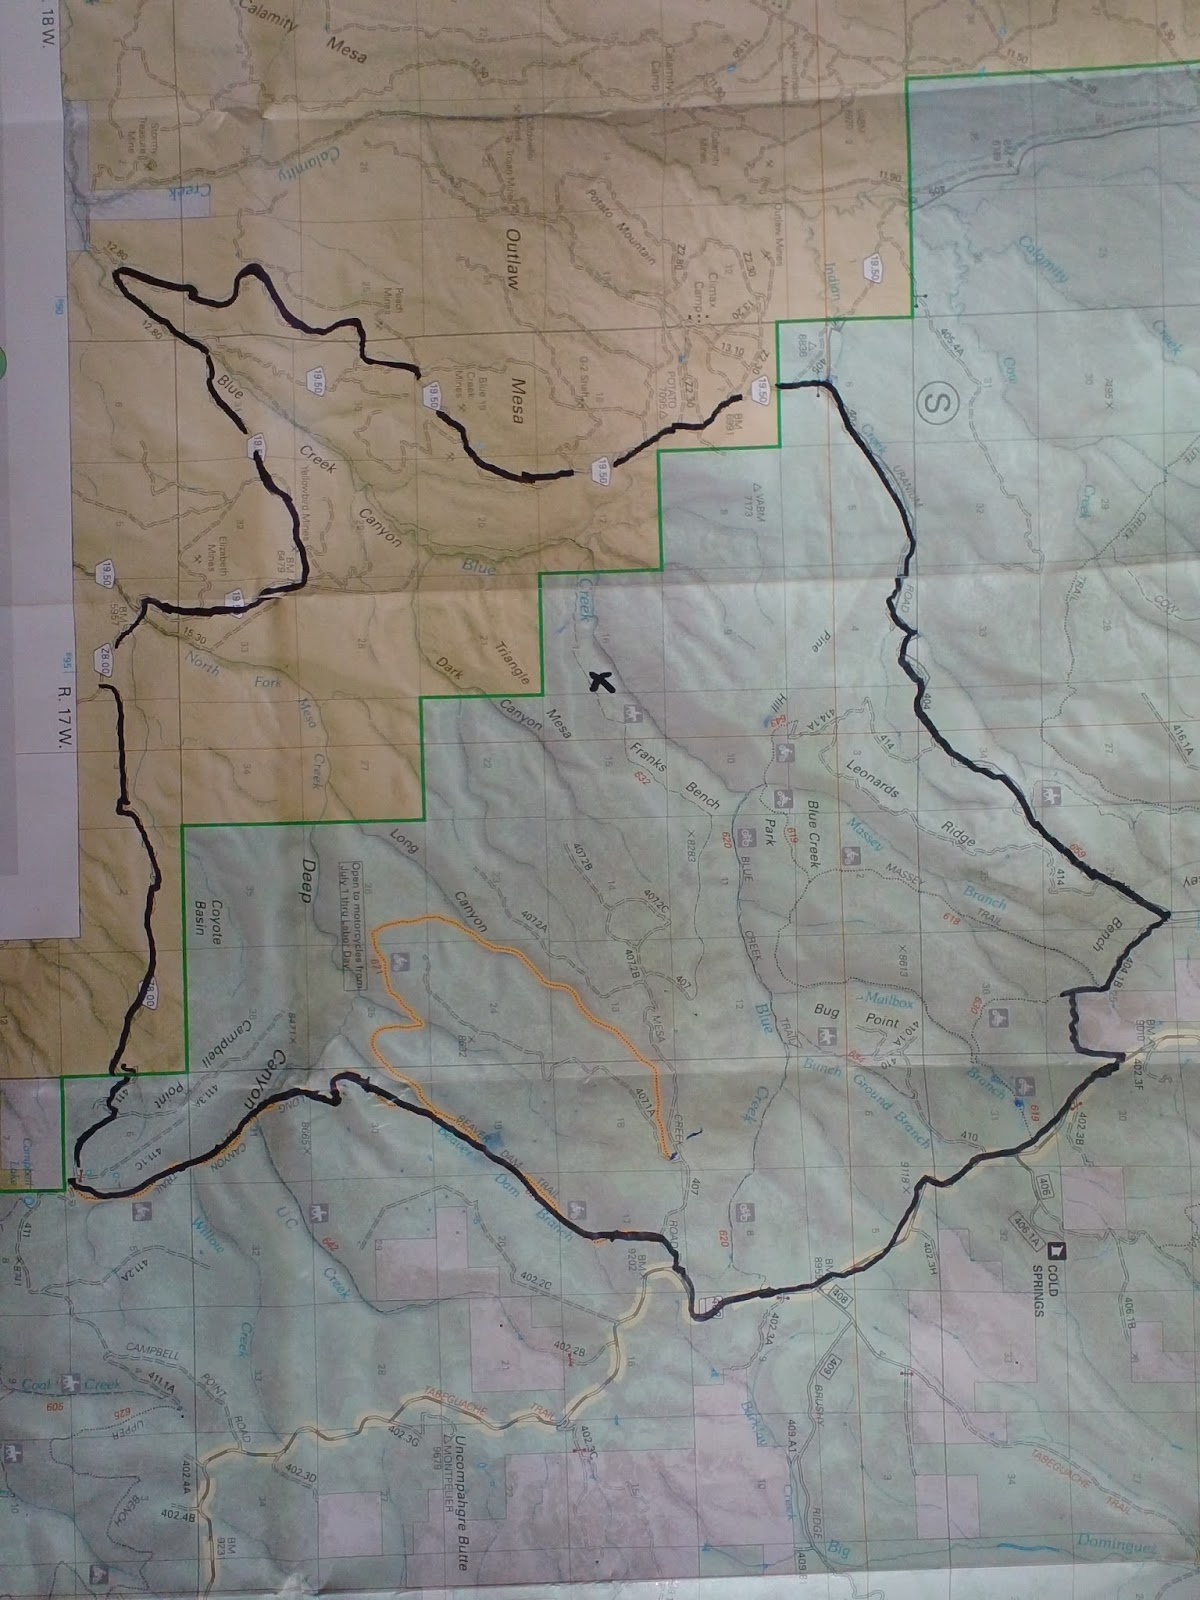 a map of the franks bench fire area the black line on the map is road trail system scouted by the module 30 miles in length